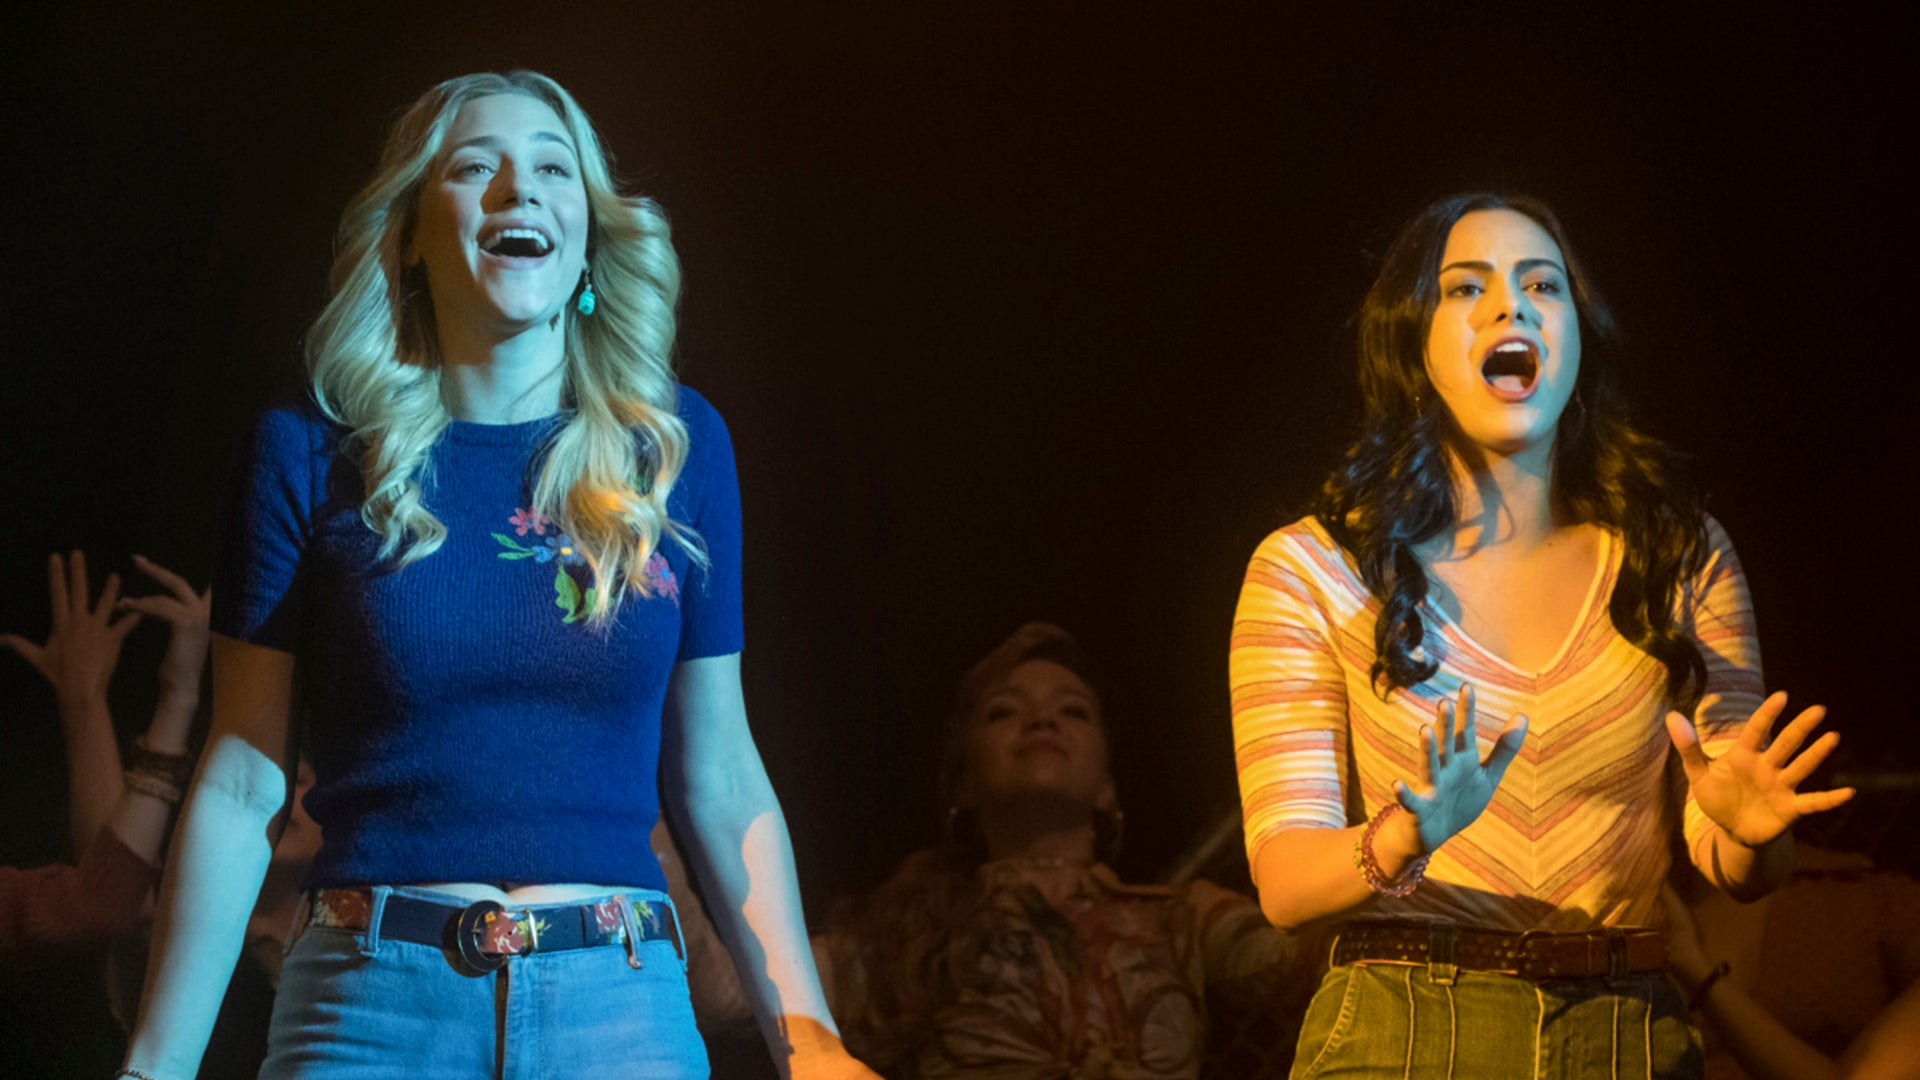 Lili Reinhart and Camila Mendes, Riverdale